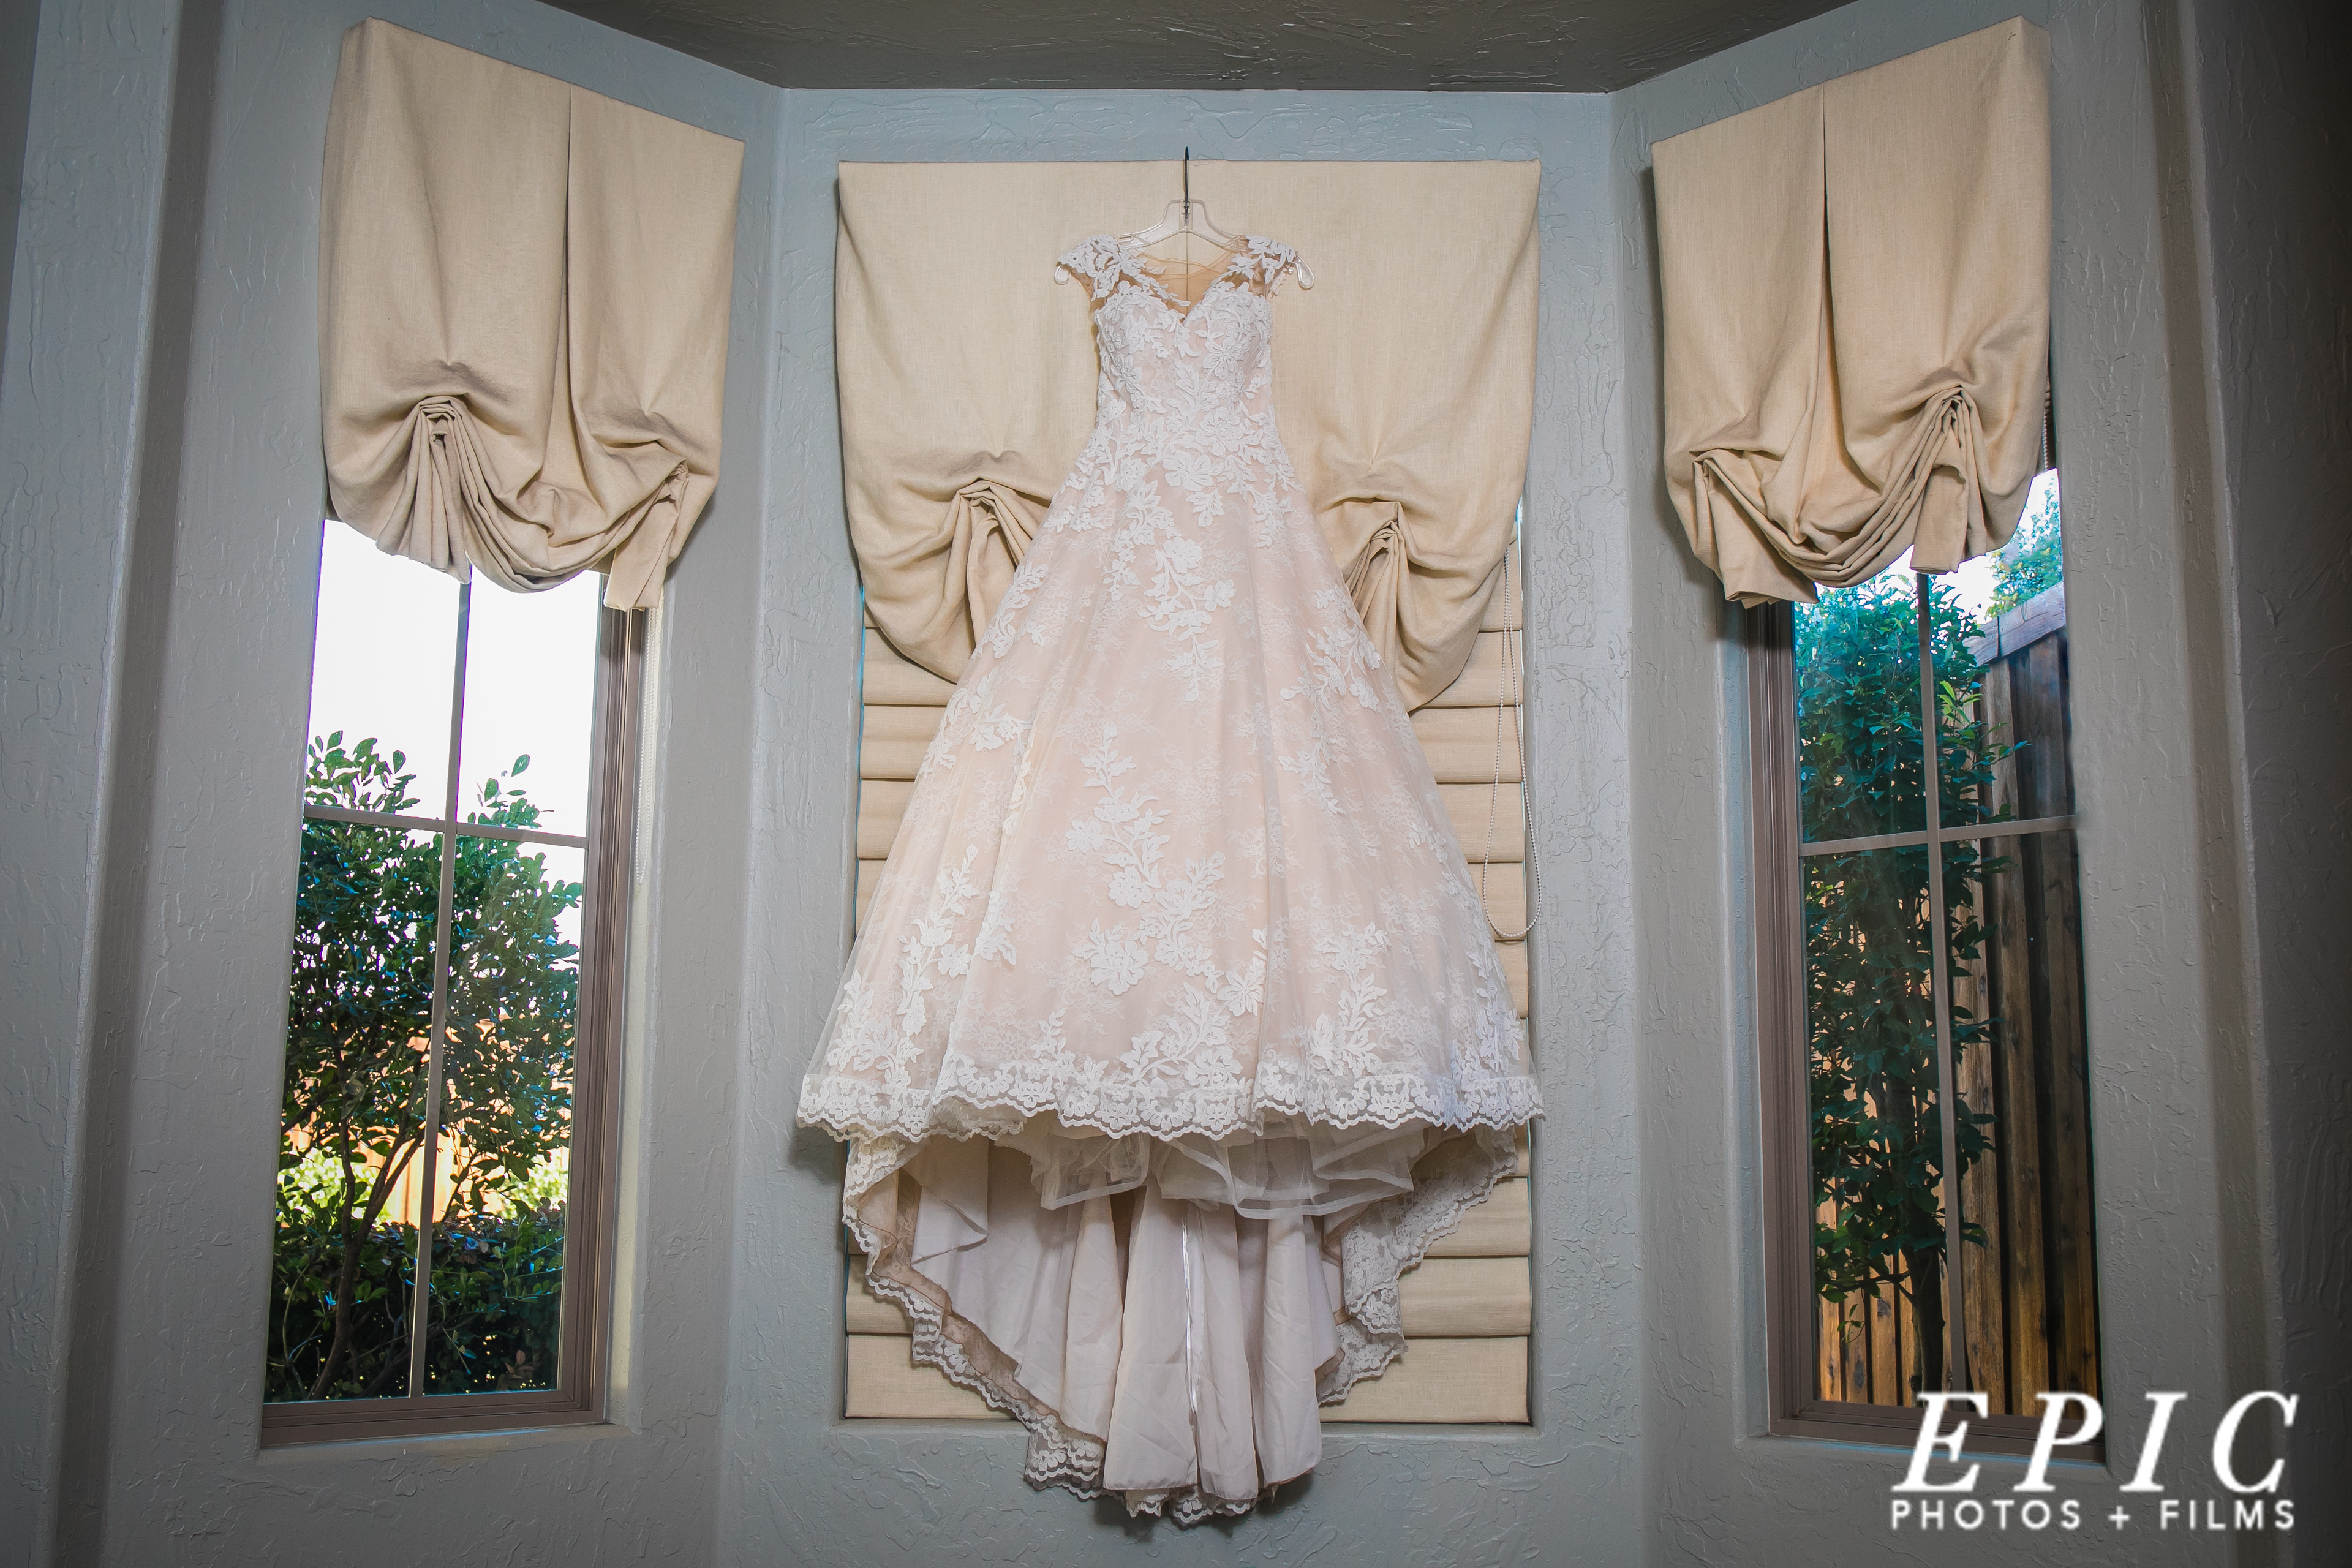 lace, off-white wedding dress haning from a window shade